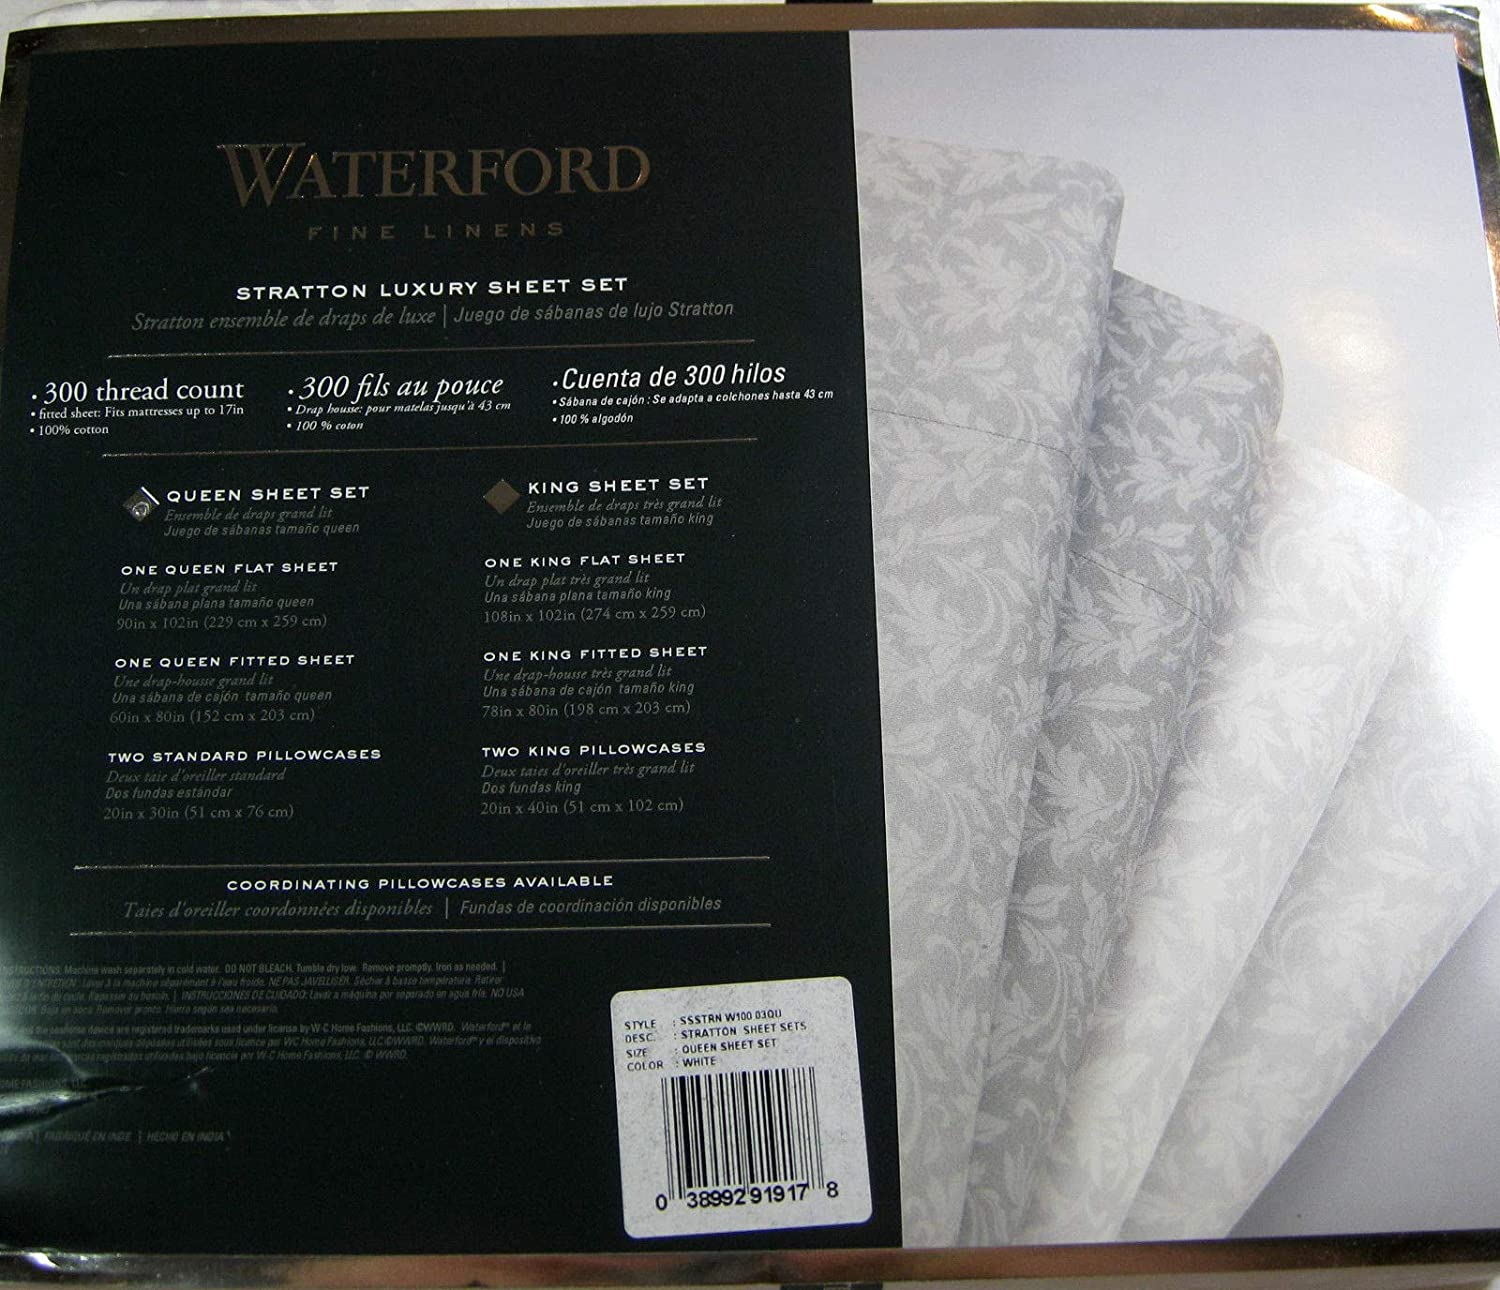 Amazon.com: Stratton Waterford 300 Thread Count Cotton Sheet Set - Silver - Queen Size: Home & Kitchen